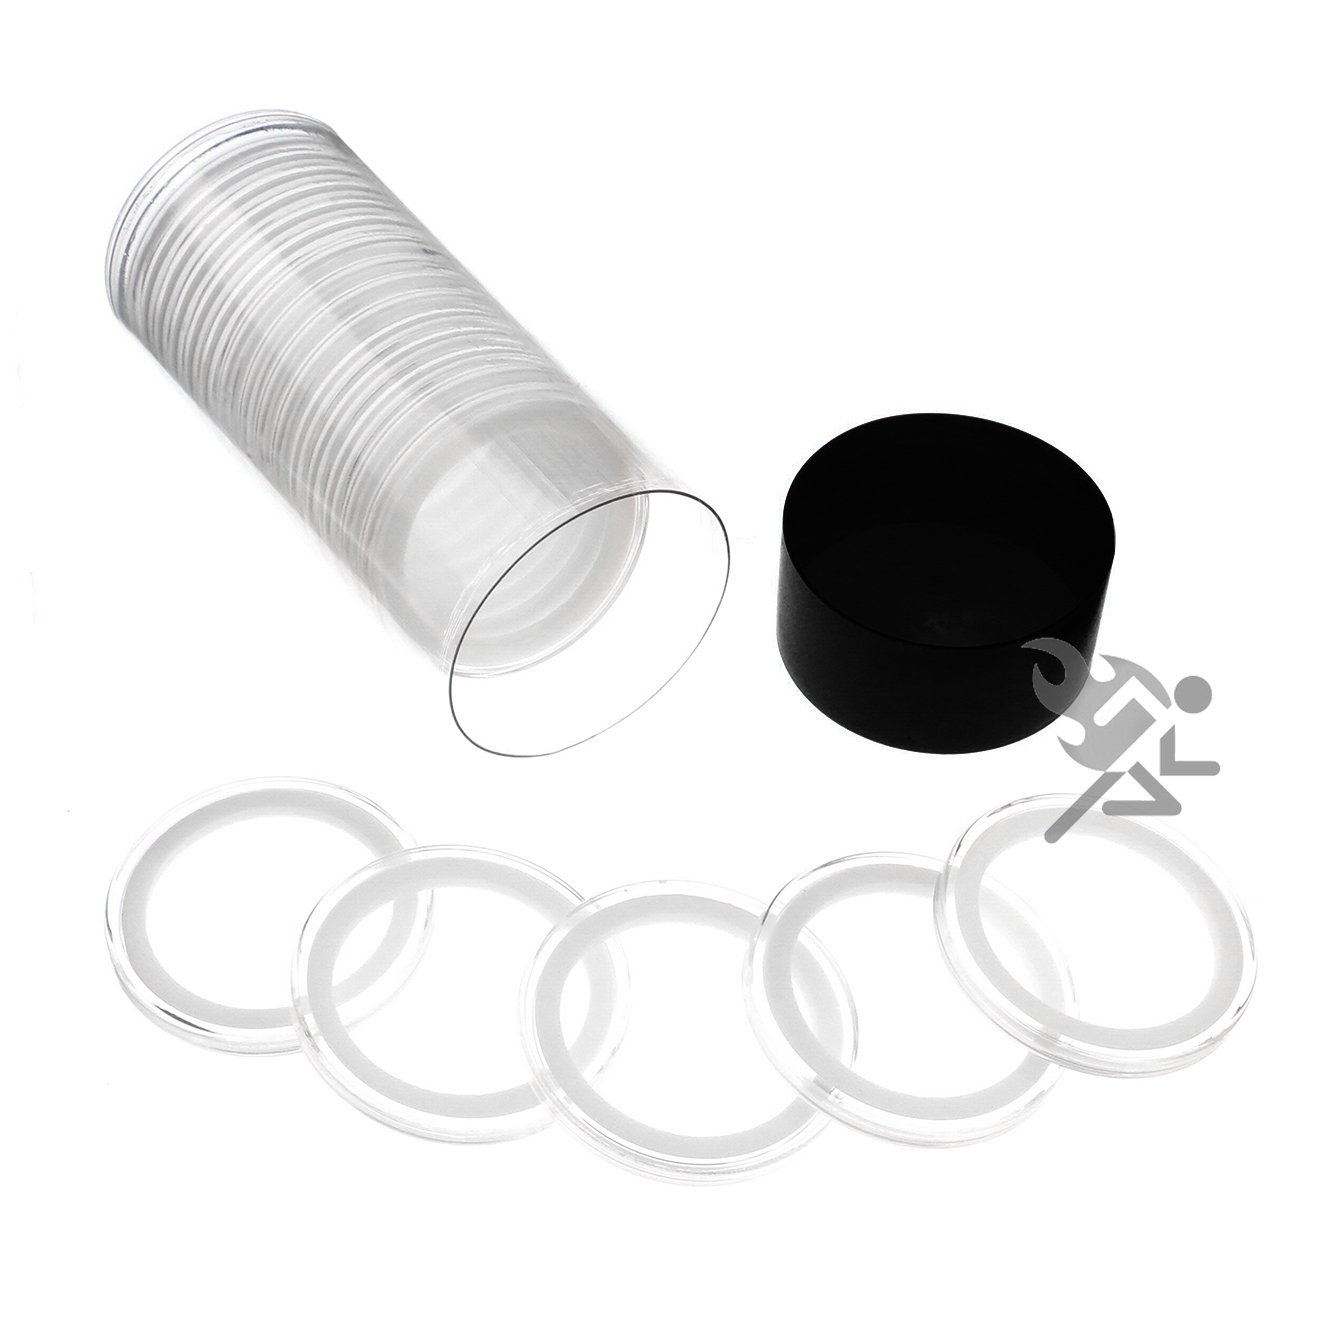 Black Lid Capsule Tube & 20 Air-Tite 39mm White Ring Coin Holders for 1oz Silver Rounds